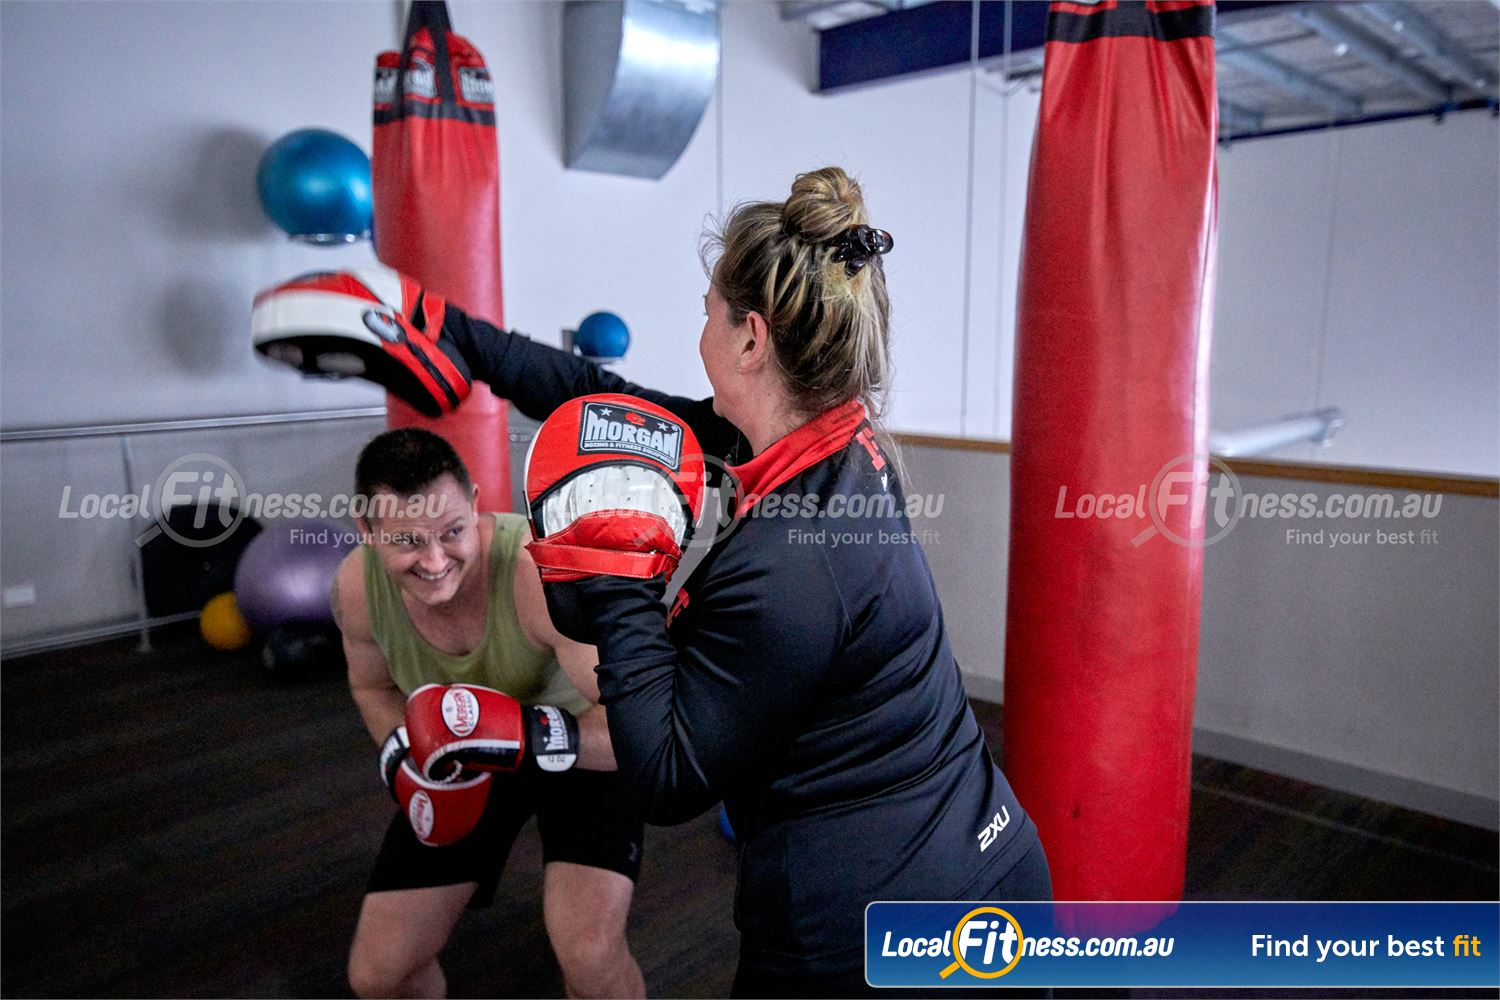 Fitness First Malvern Valley Near Mount Waverley Our Chadstone personal trainers can take you through a fun boxing workout.